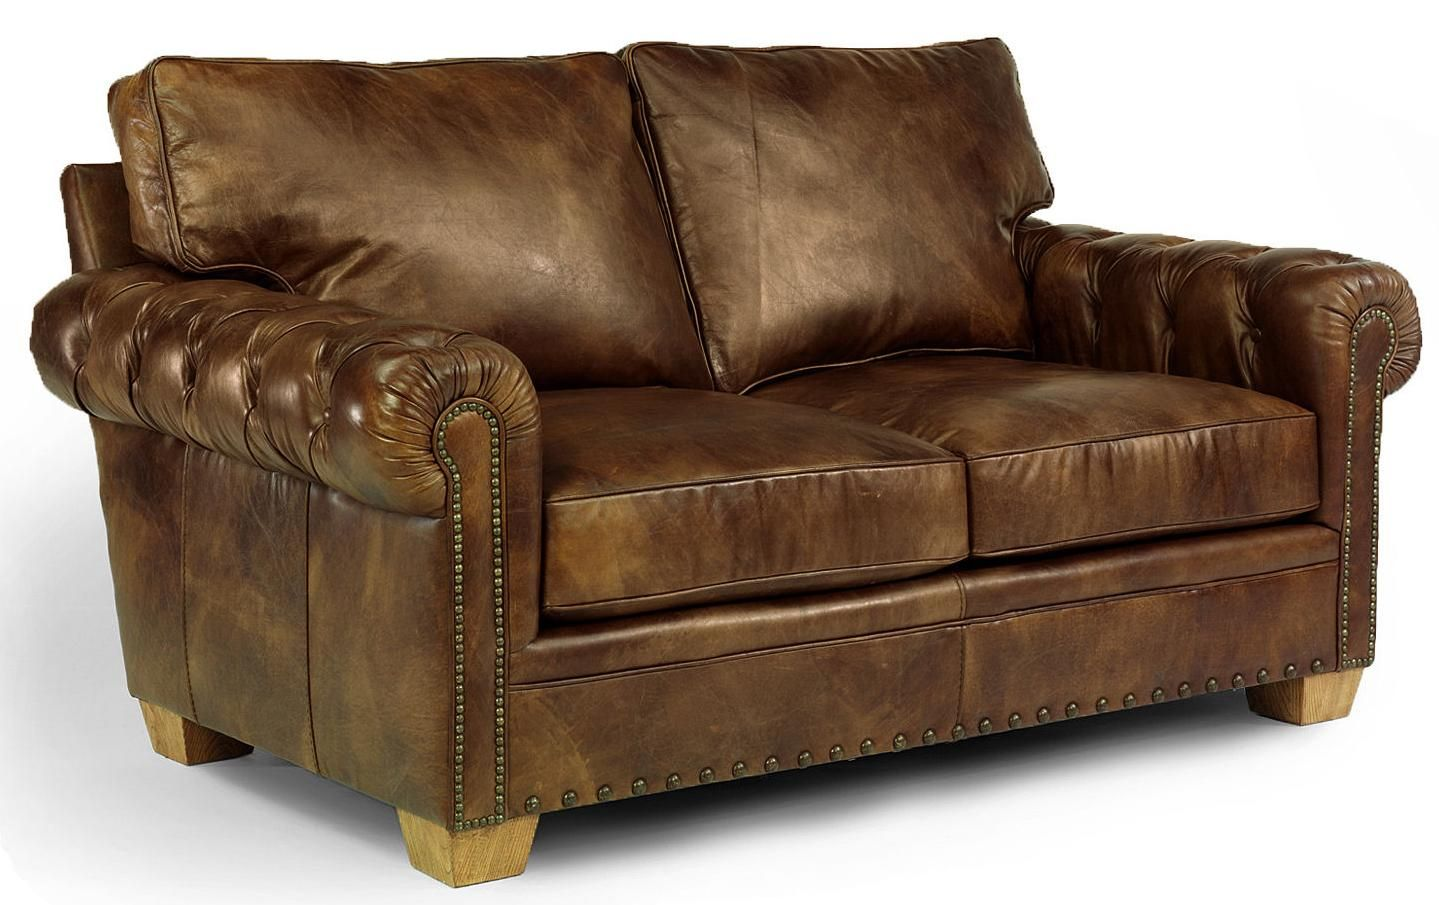 Flexsteel Furniture Latitudes Somerset Collection Featuring Loveseat Sofa And Chair With Otto Distressed Leather Sofa Leather Loveseat Brown Leather Loveseat